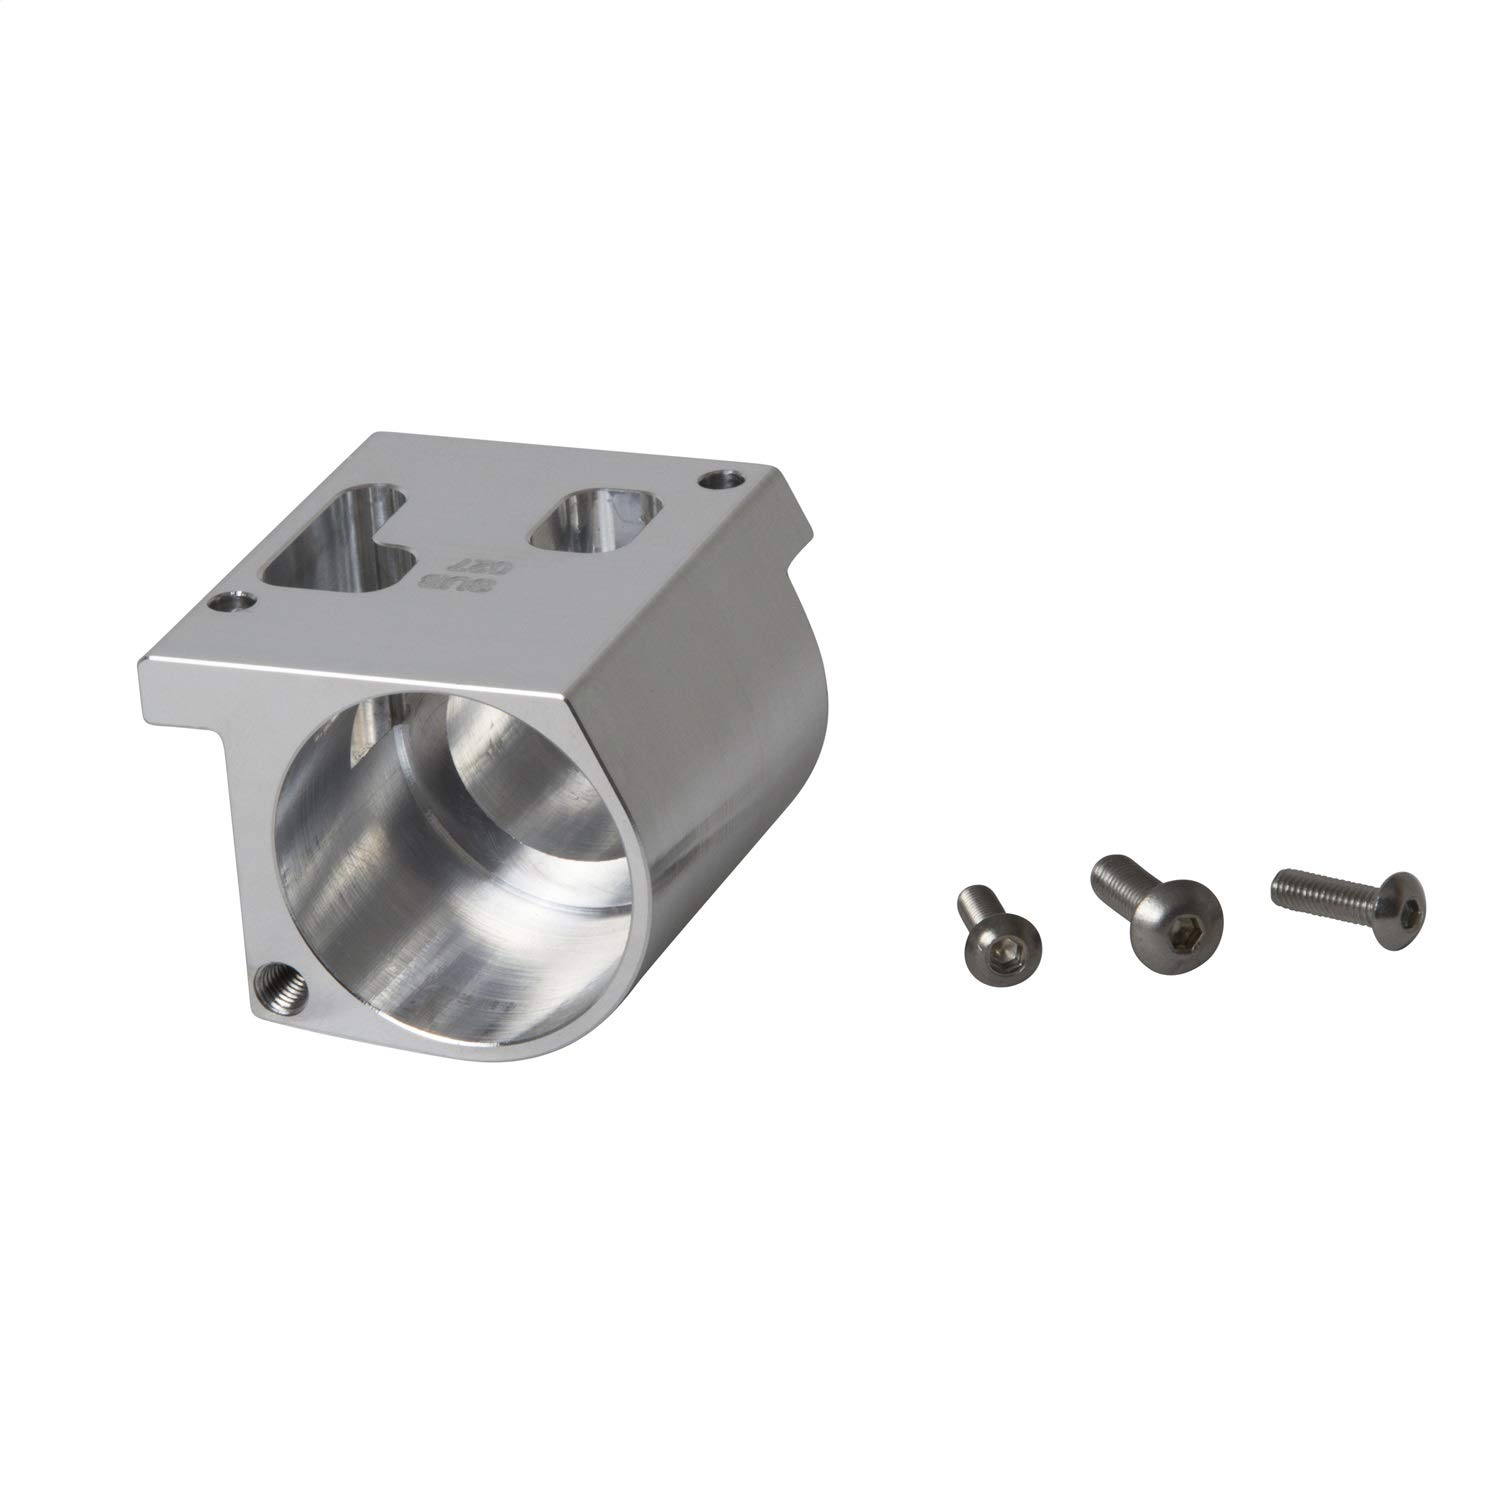 BBK Performance Parts 17240 Power-Plus Series Throttle Body High Flow 62mm Incl. All Required Gaskets And Hardware No Tune Required Power-Plus Series Throttle Body